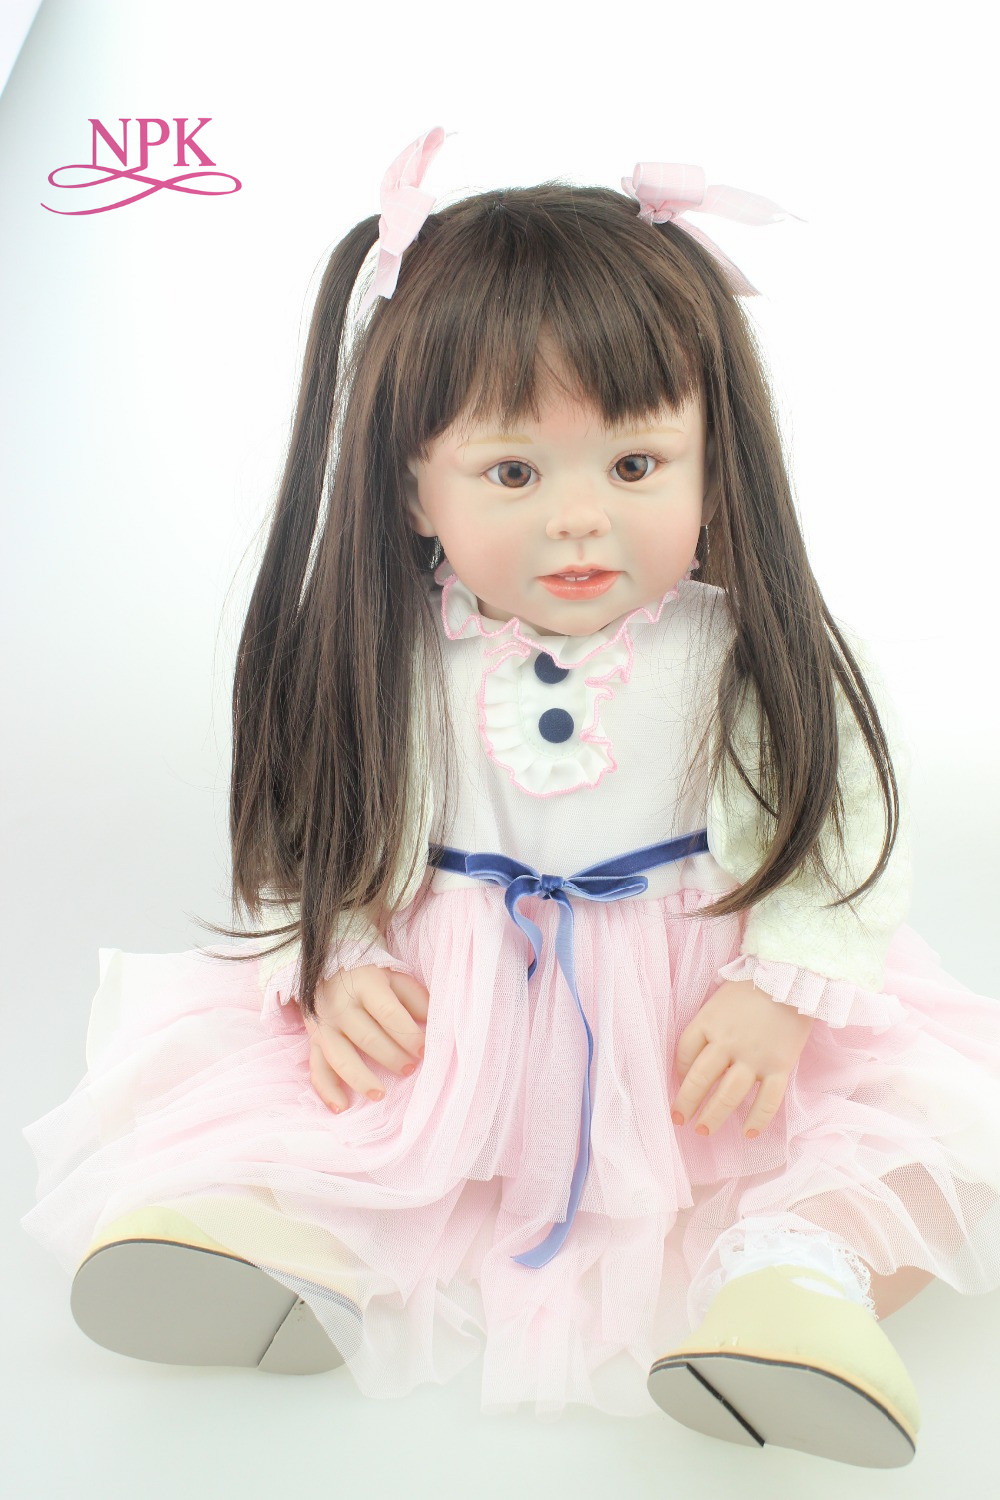 NPK 70cm Silicone Reborn Baby Doll Toys Like Real 28inch Vinyl Princess Toddler Babies Dolls long hair bebe reborn bonecas npk brand doll reborn long brown hair princess baby dolls soft silicone toddler girls toys boneca reborn realista